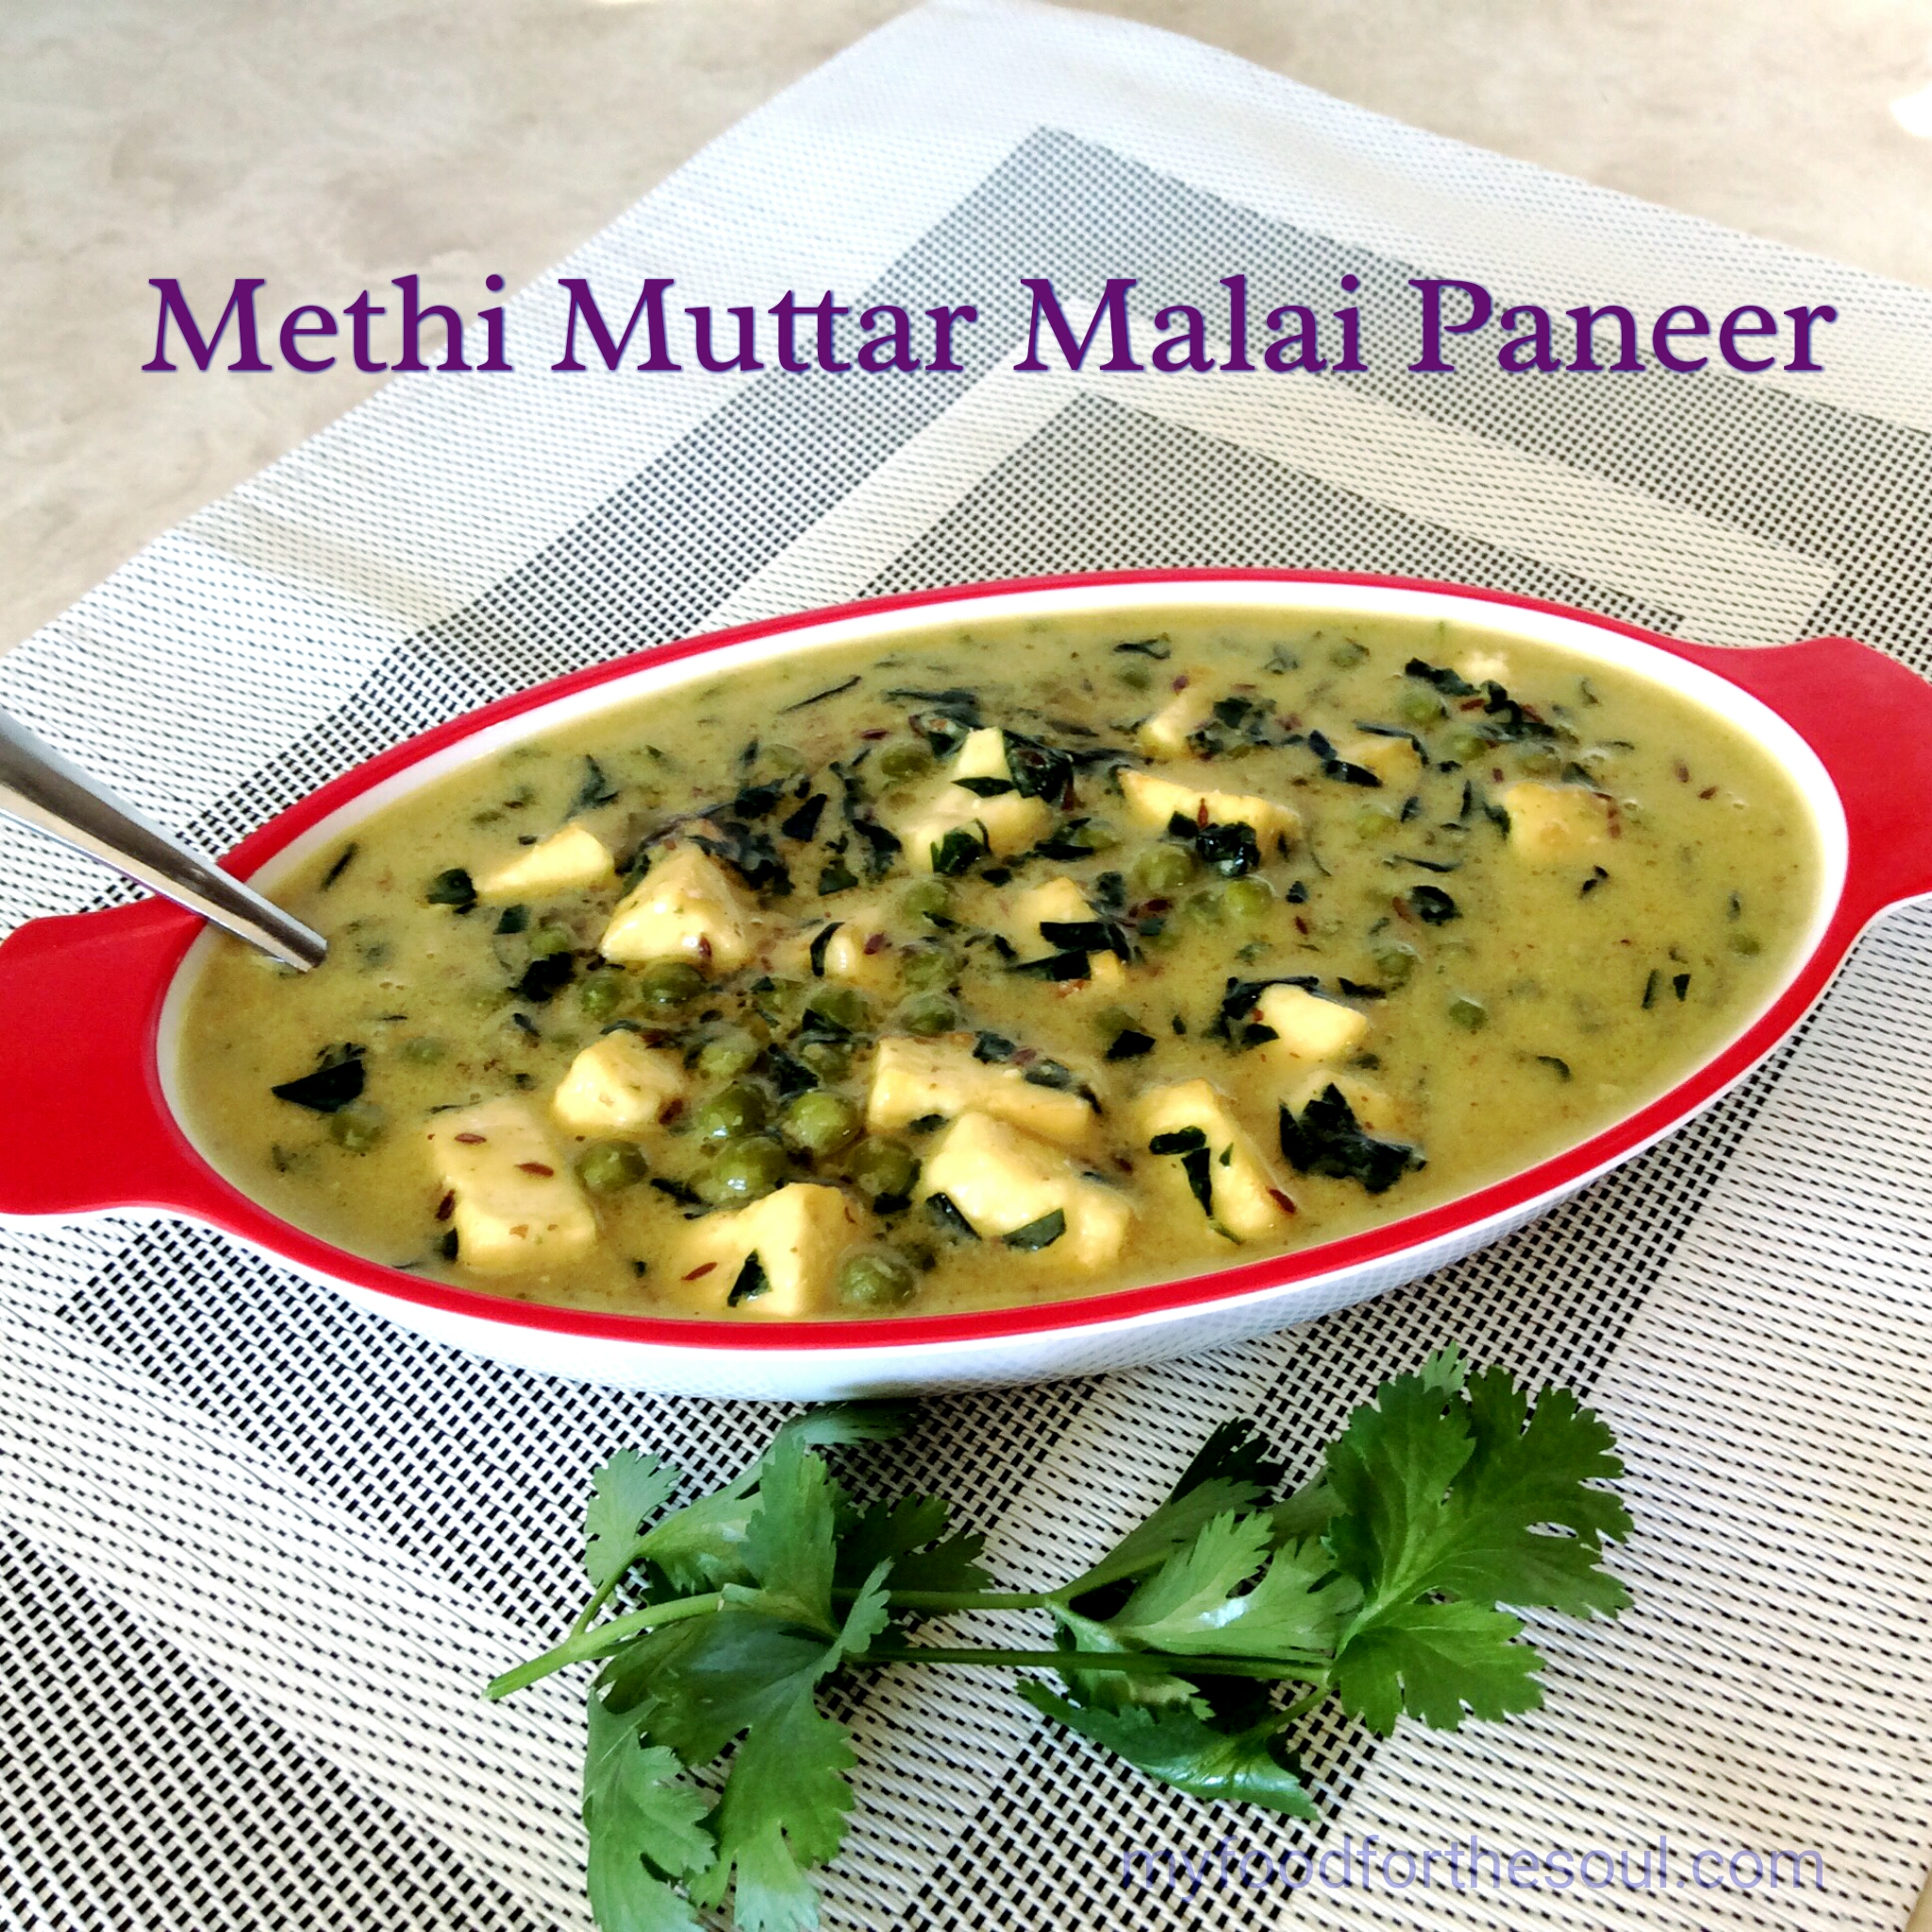 Methi Muttar Malai Paneer